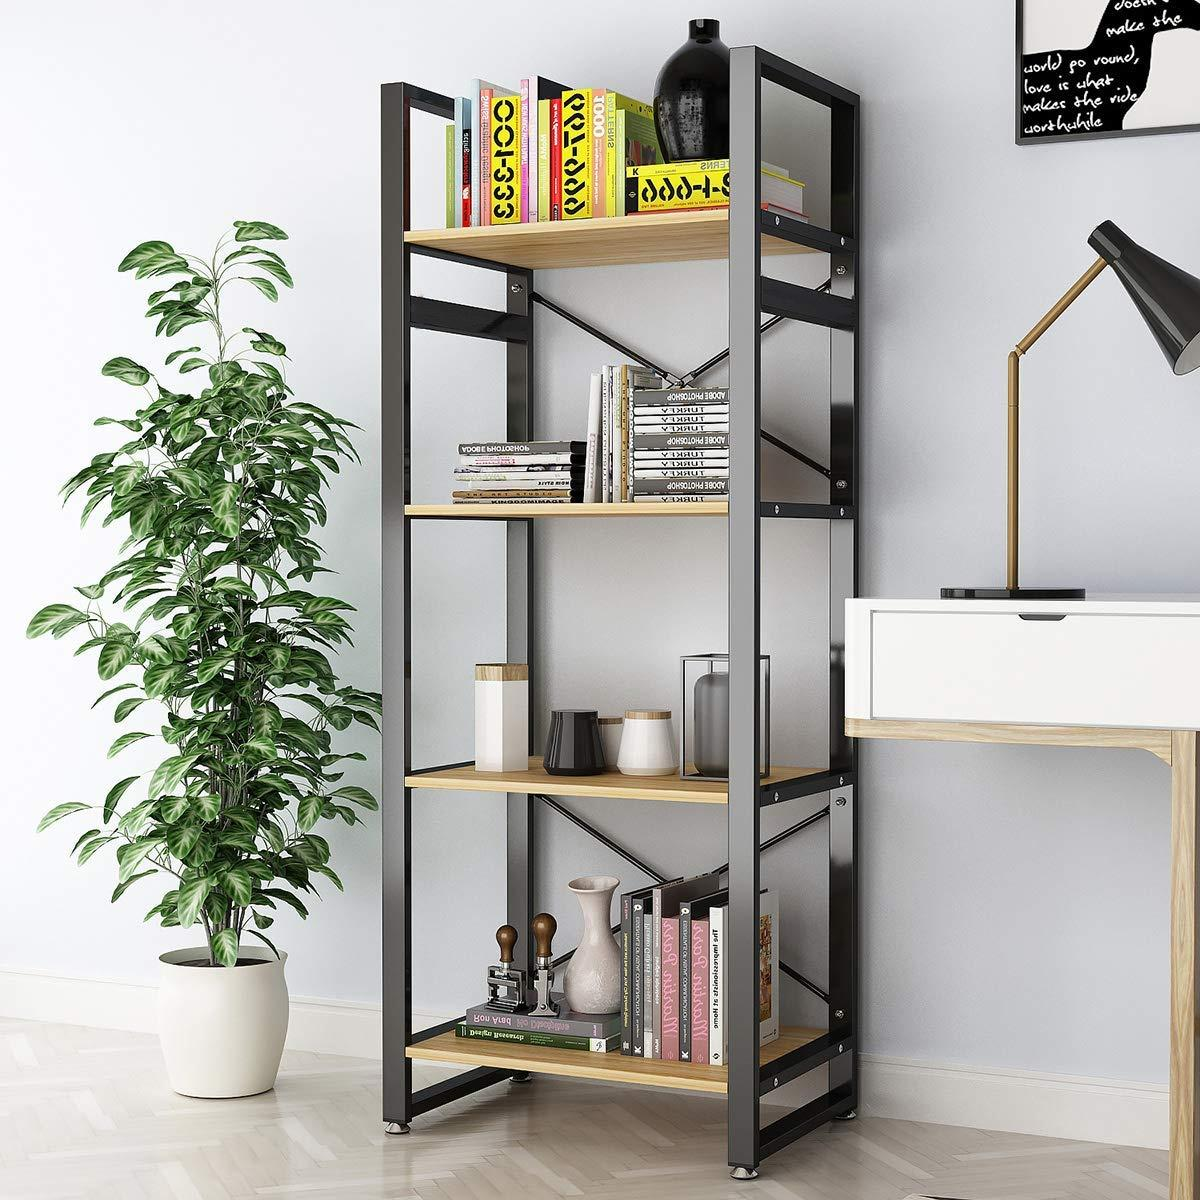 4 Tier Bookcase Vintage Industrial Rustic Bookshelf Rack Metal And Wood Bookcase 61 High Tall Bookcase Storage Shelf For Home Office